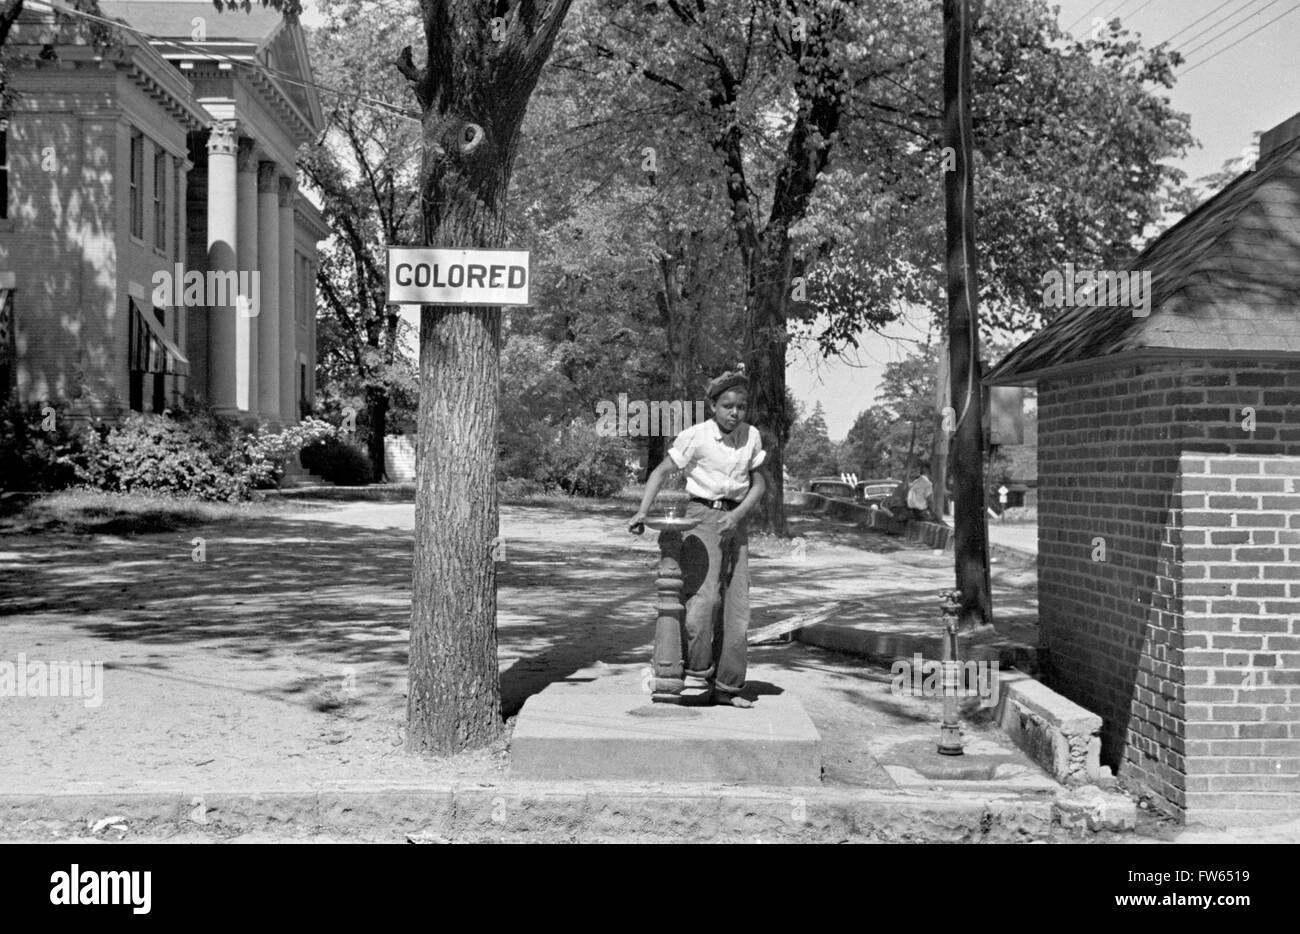 Segregation, USA. Young black boy drinking at a water fountain with a 'Colored' sign above it, Halifax, - Stock Image